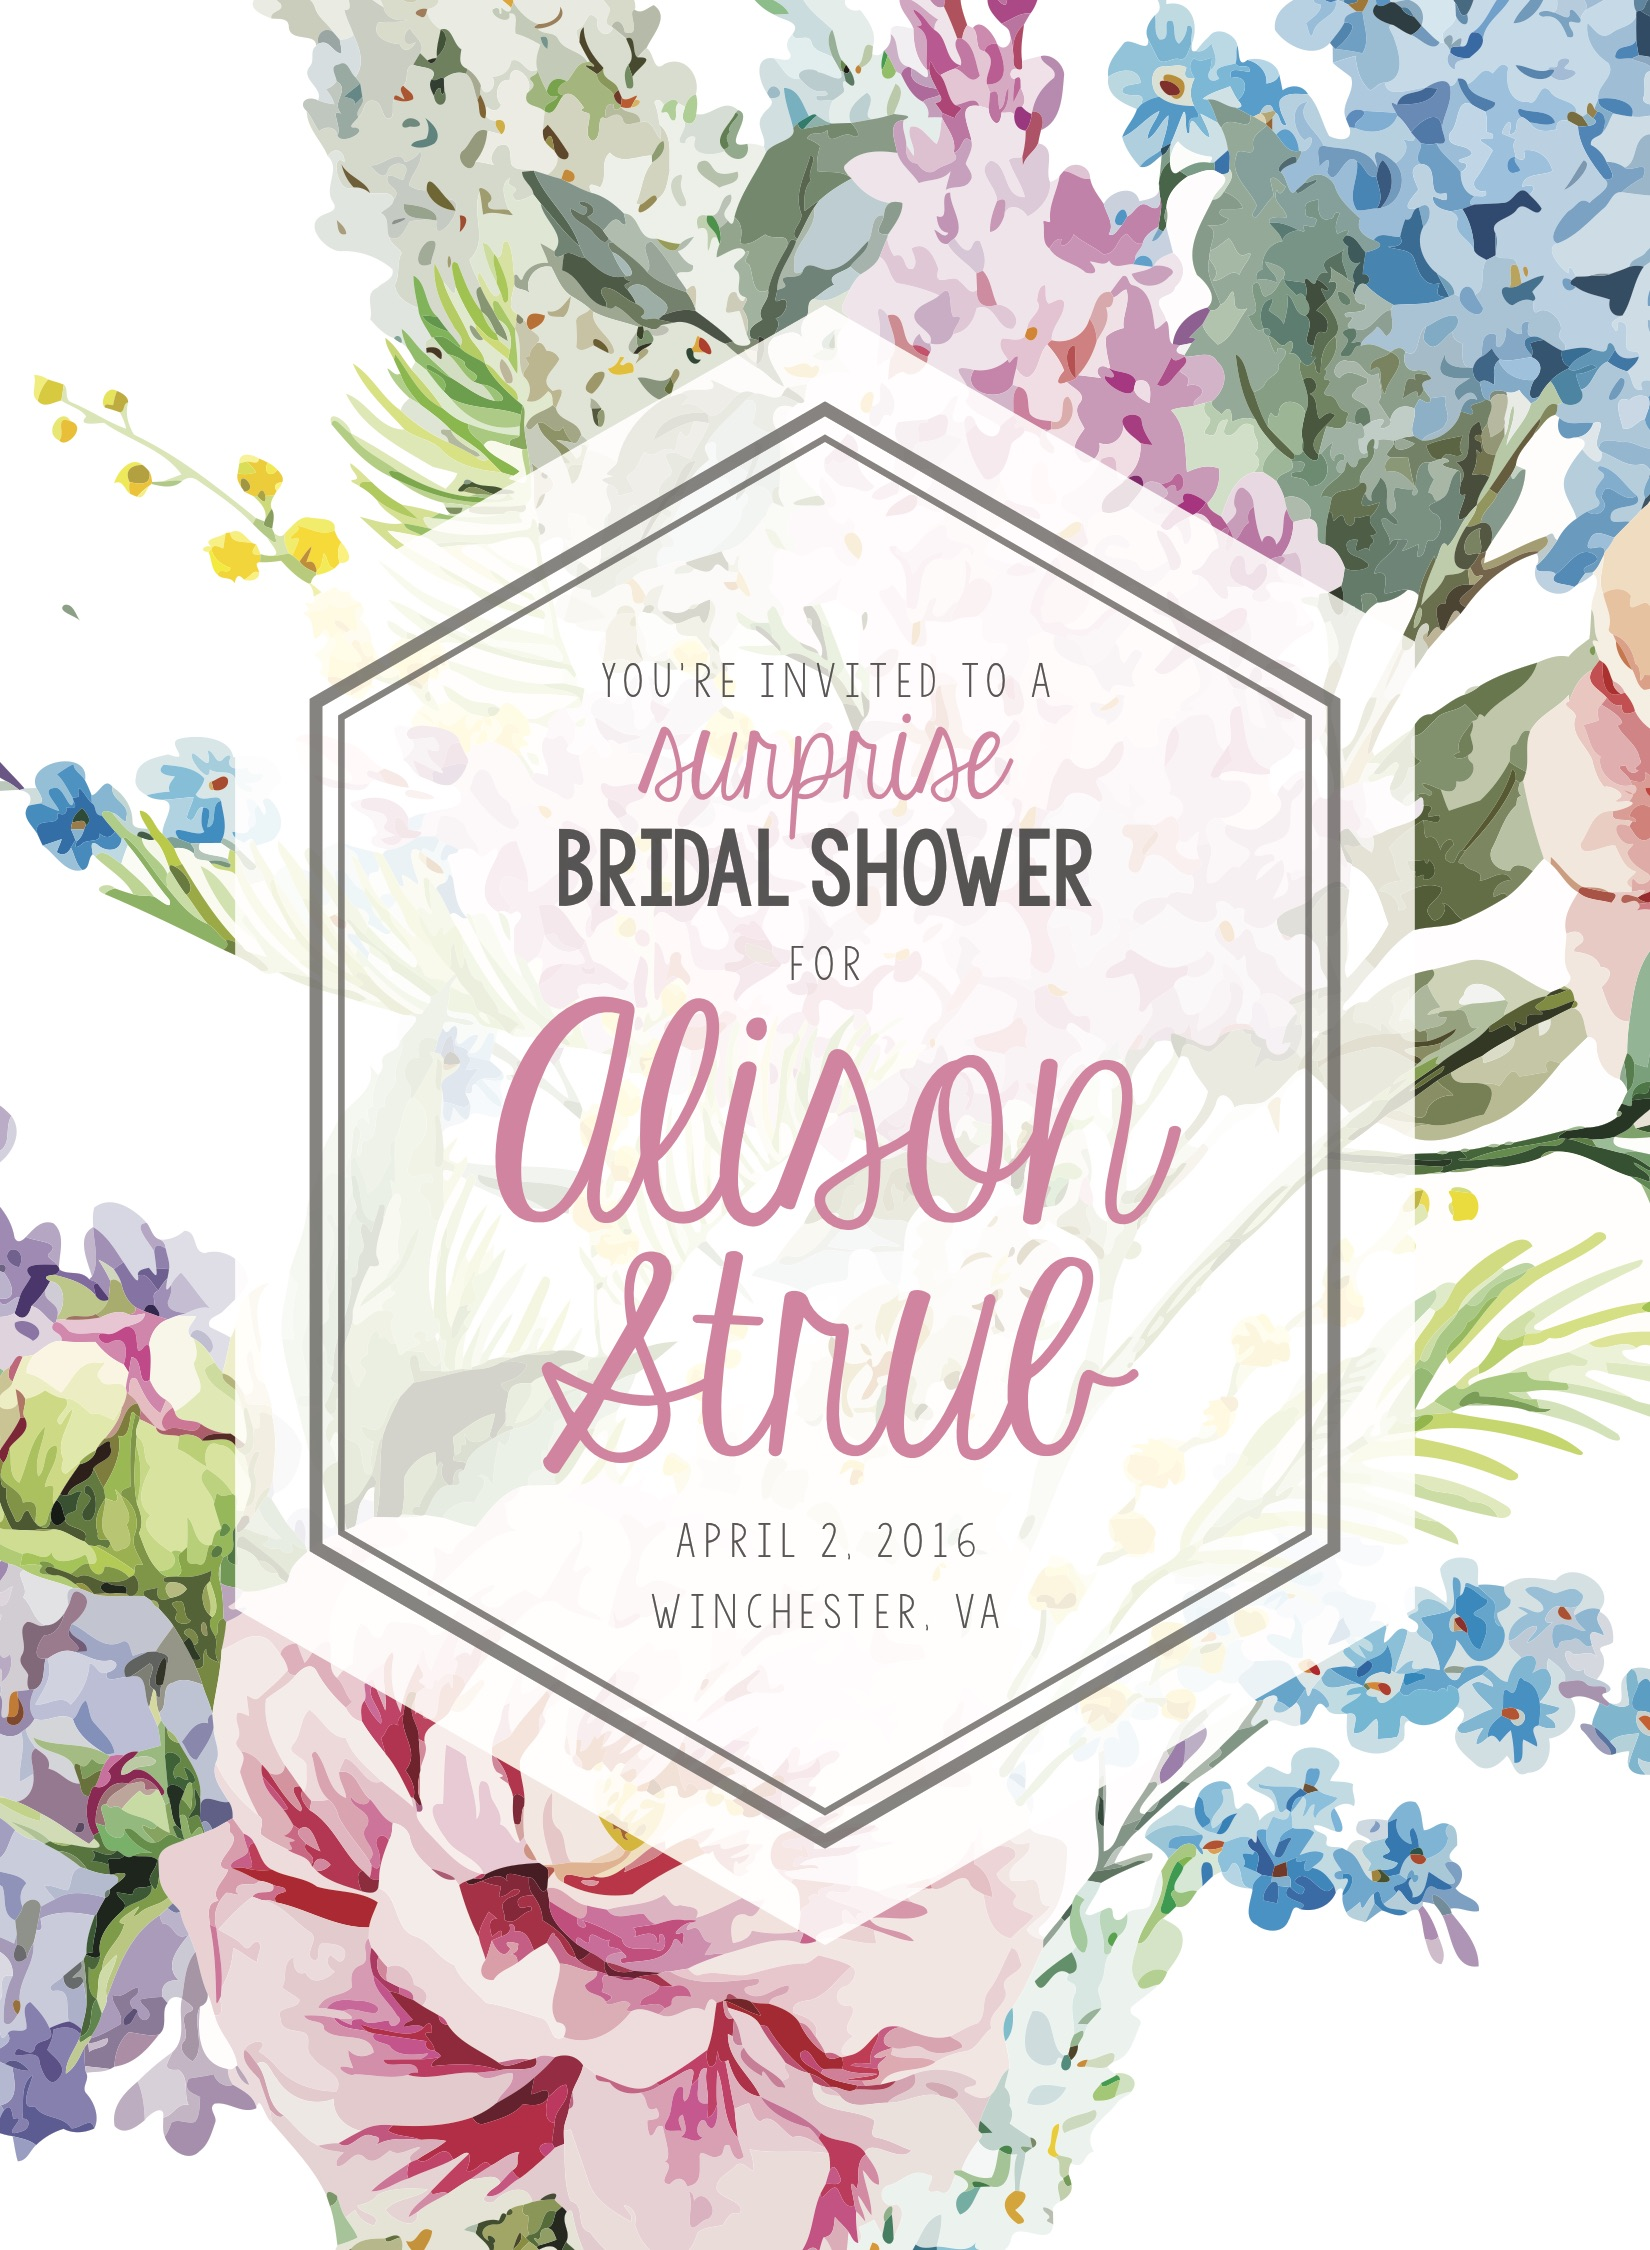 Alison-Strub-Shower_Final.jpg